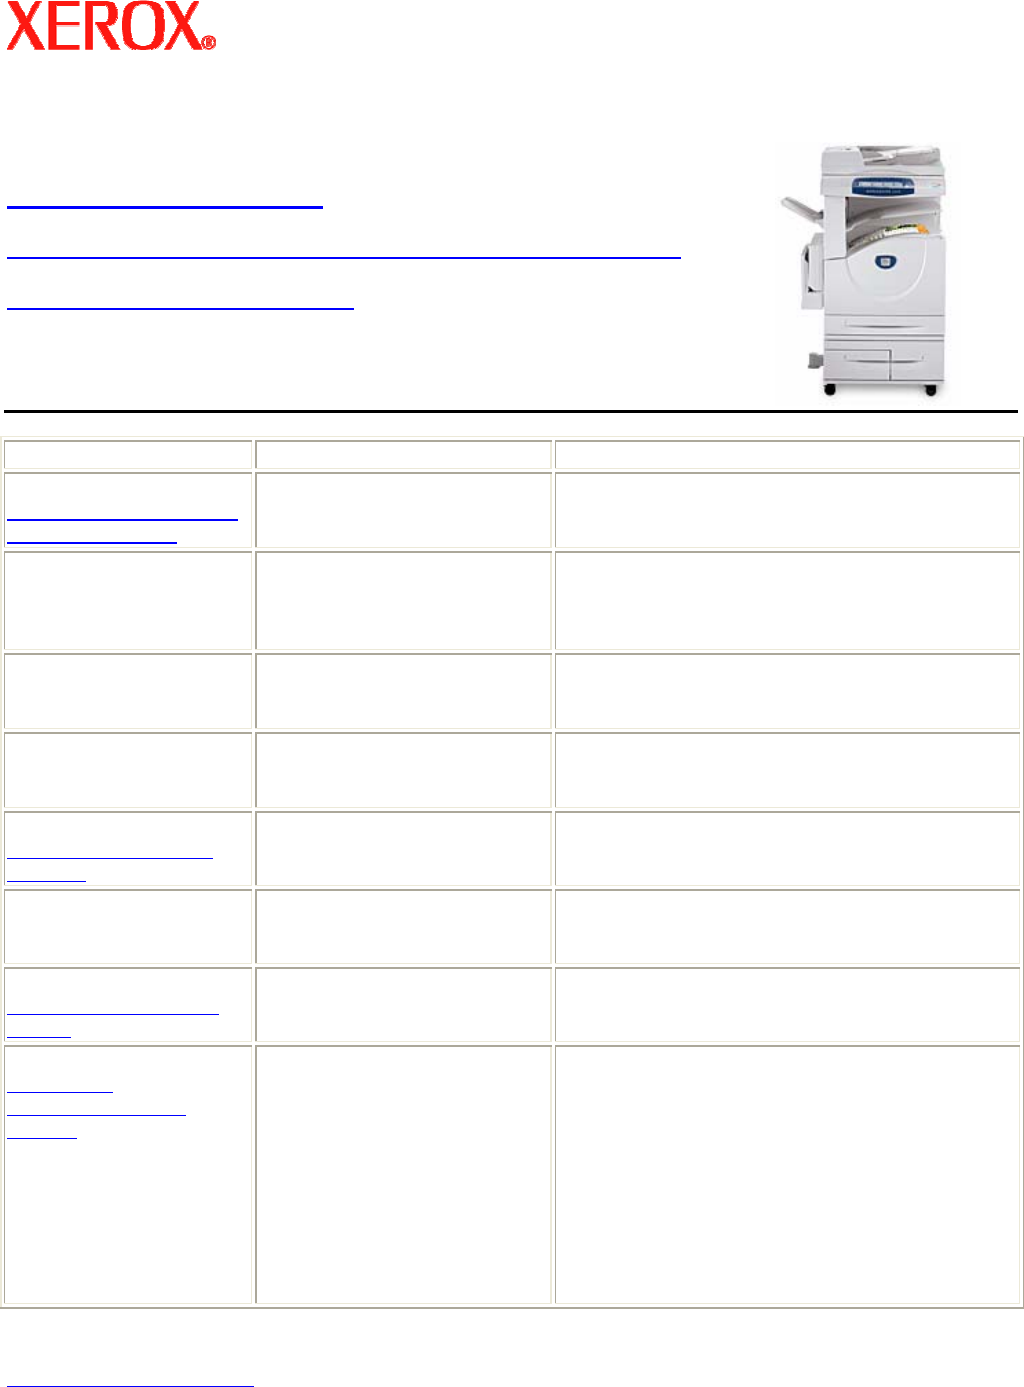 Xerox all in one printer 7232 user guide for Voluntary product accessibility template section 508